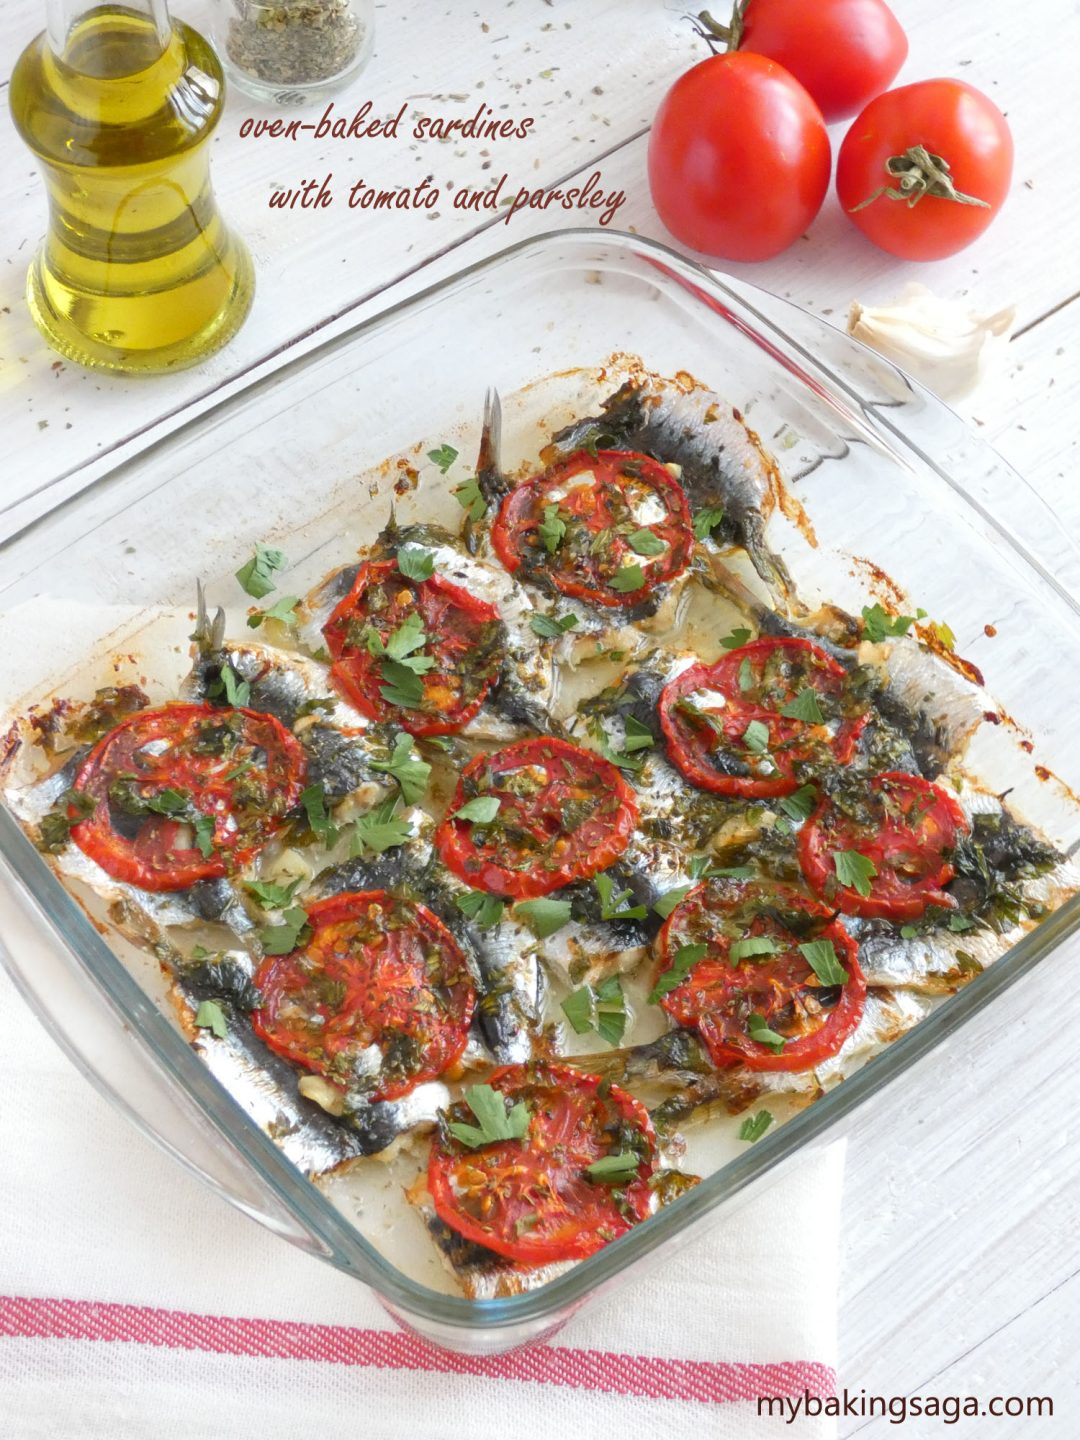 oven-baked sardines with tomato and parsley